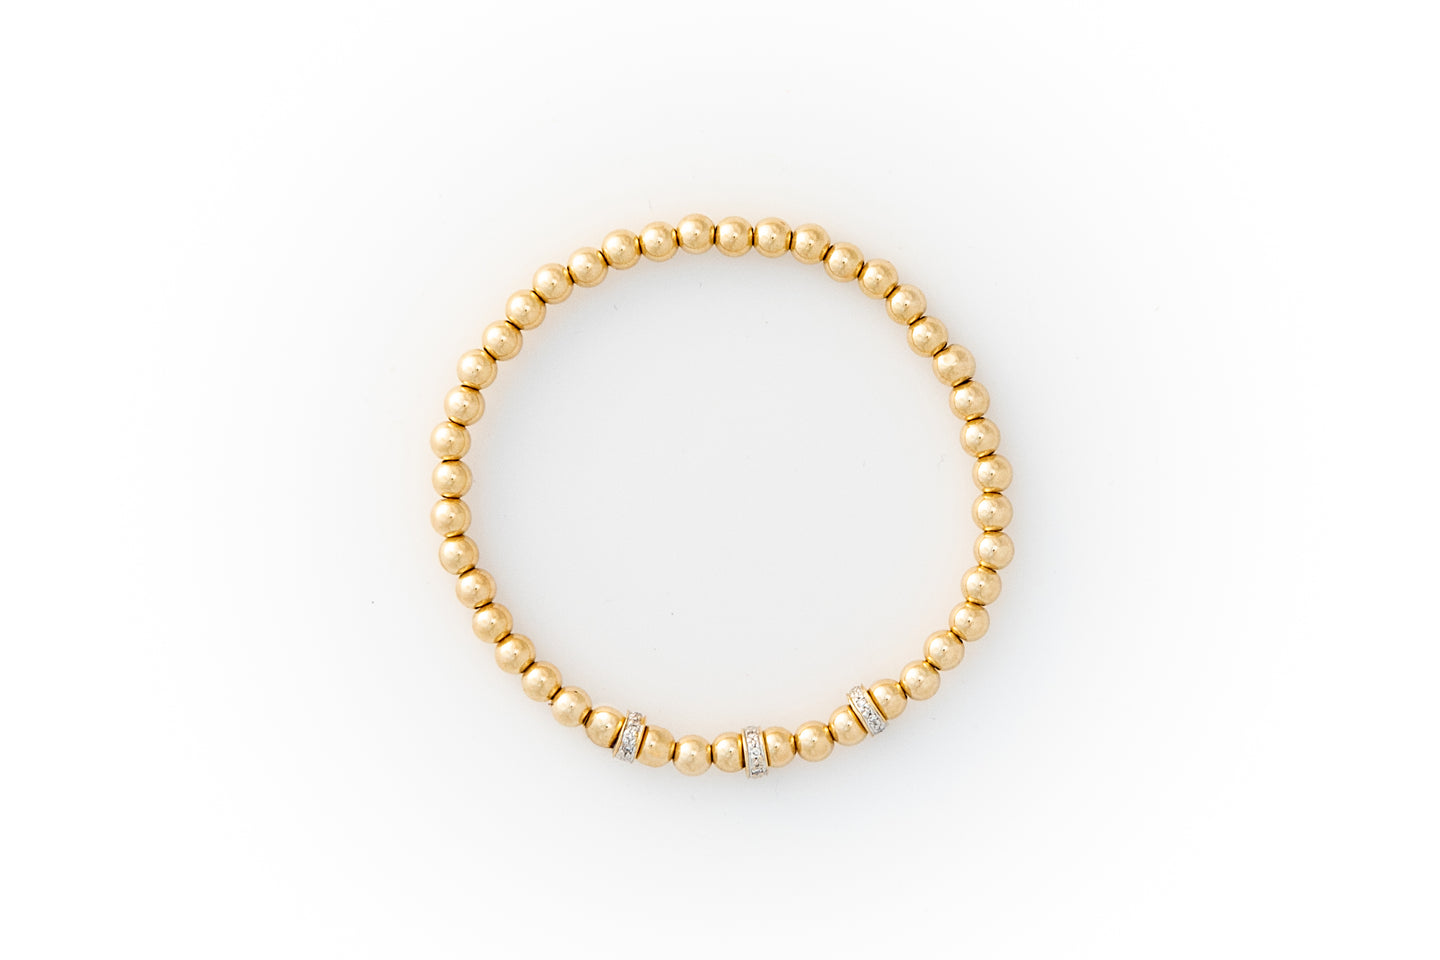 Small Gold Bracelet + Pavé Diamonds in 14k Gold (3)